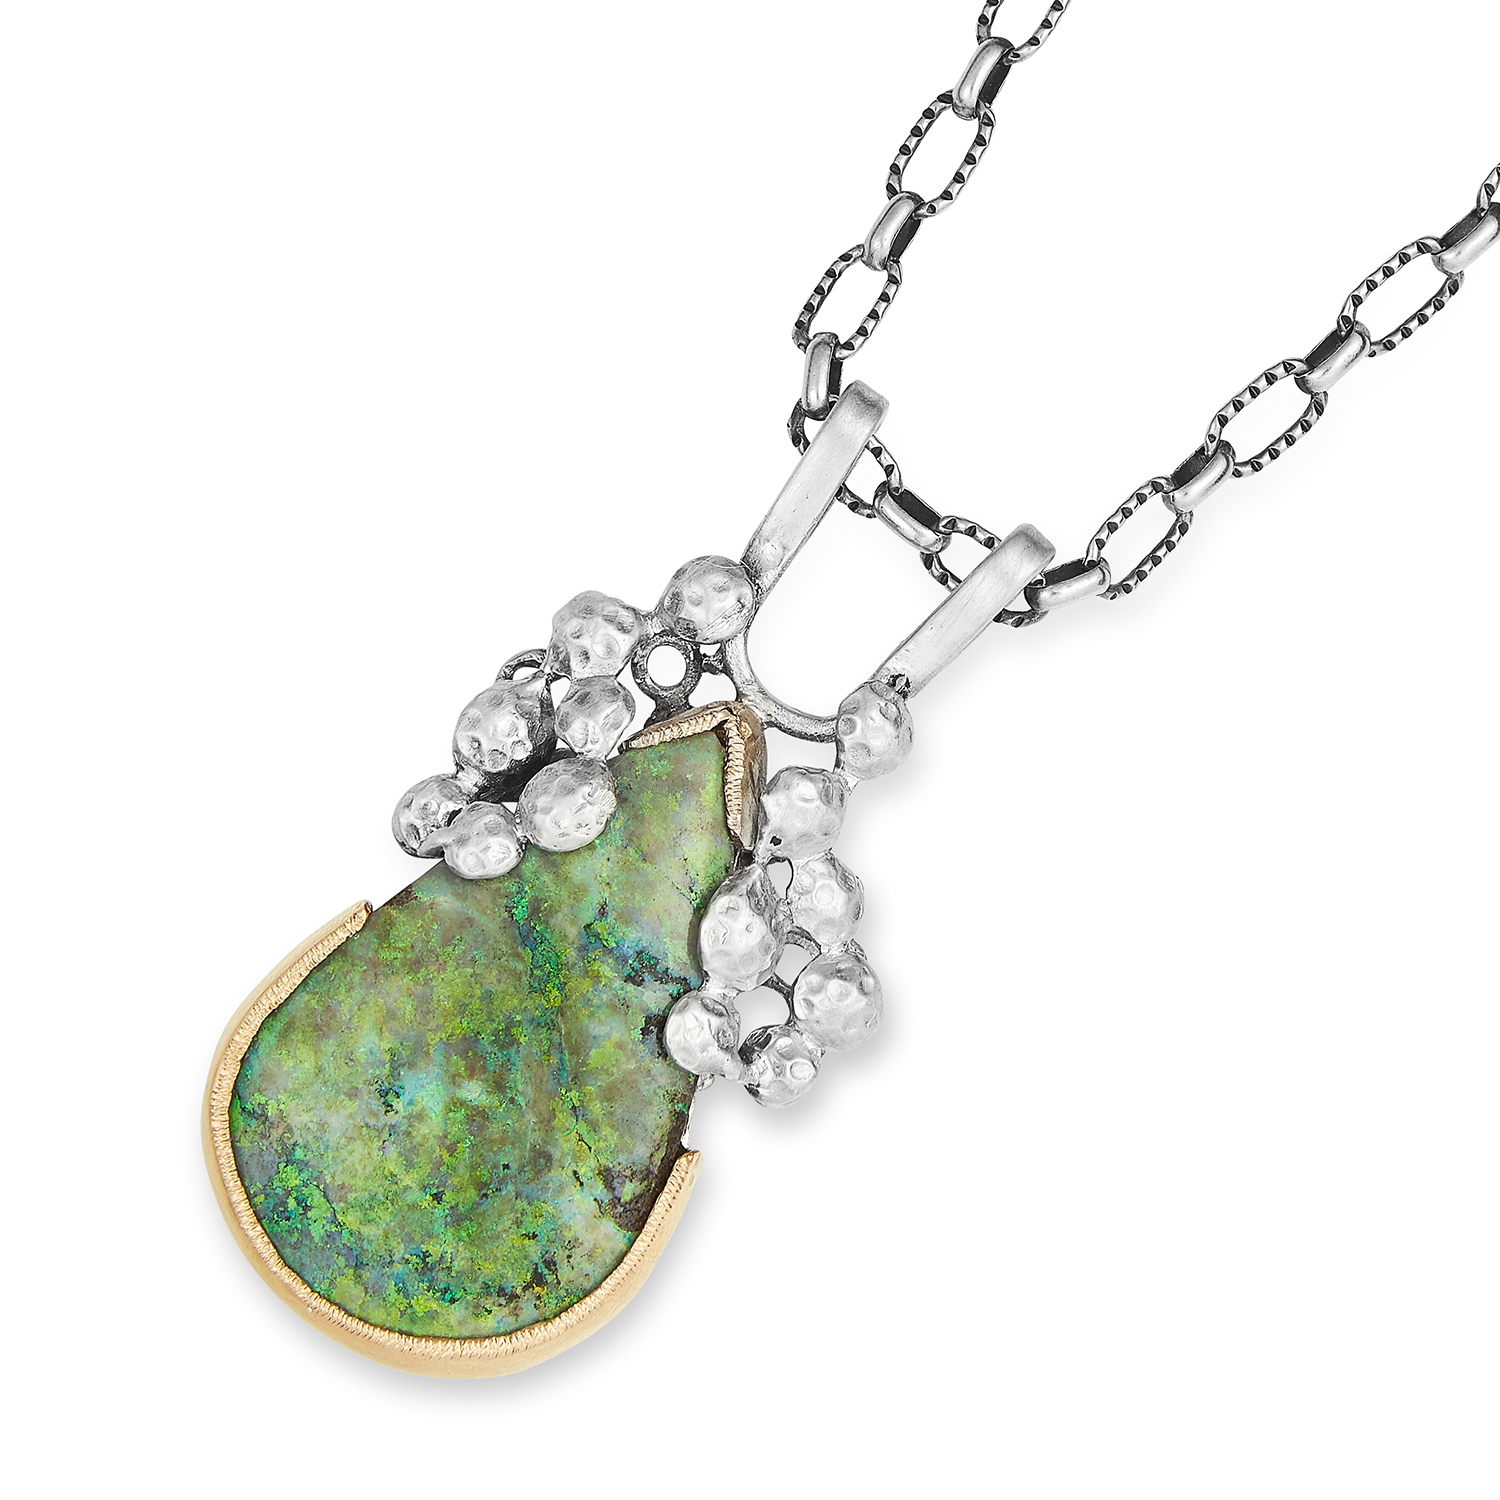 ABSTRACT OPAL PENDANT NECKLACE in silver, set with a 21.69 carat pear cut opal, stamped 935,